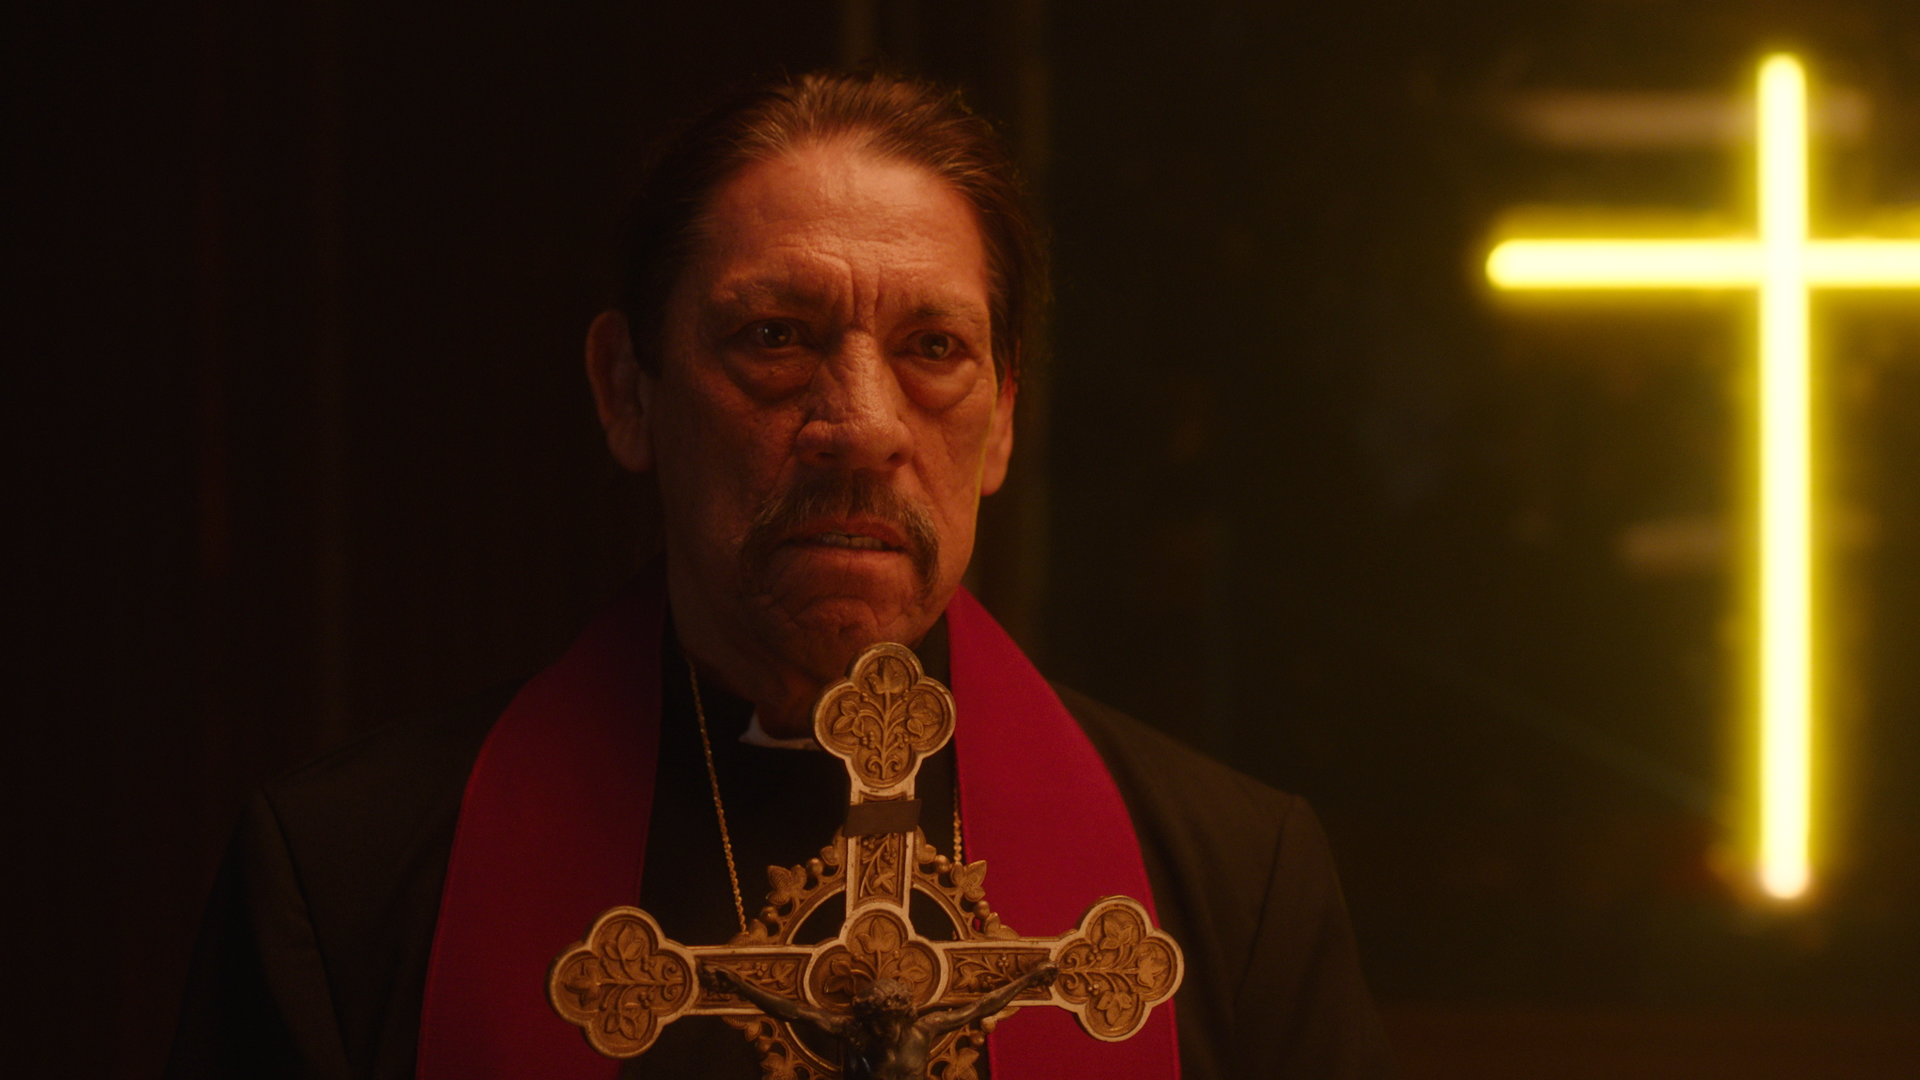 Exorcism Trailer Before Halloween 2020 Danny Trejo Has Done It All and Now He's Playing 'The Last